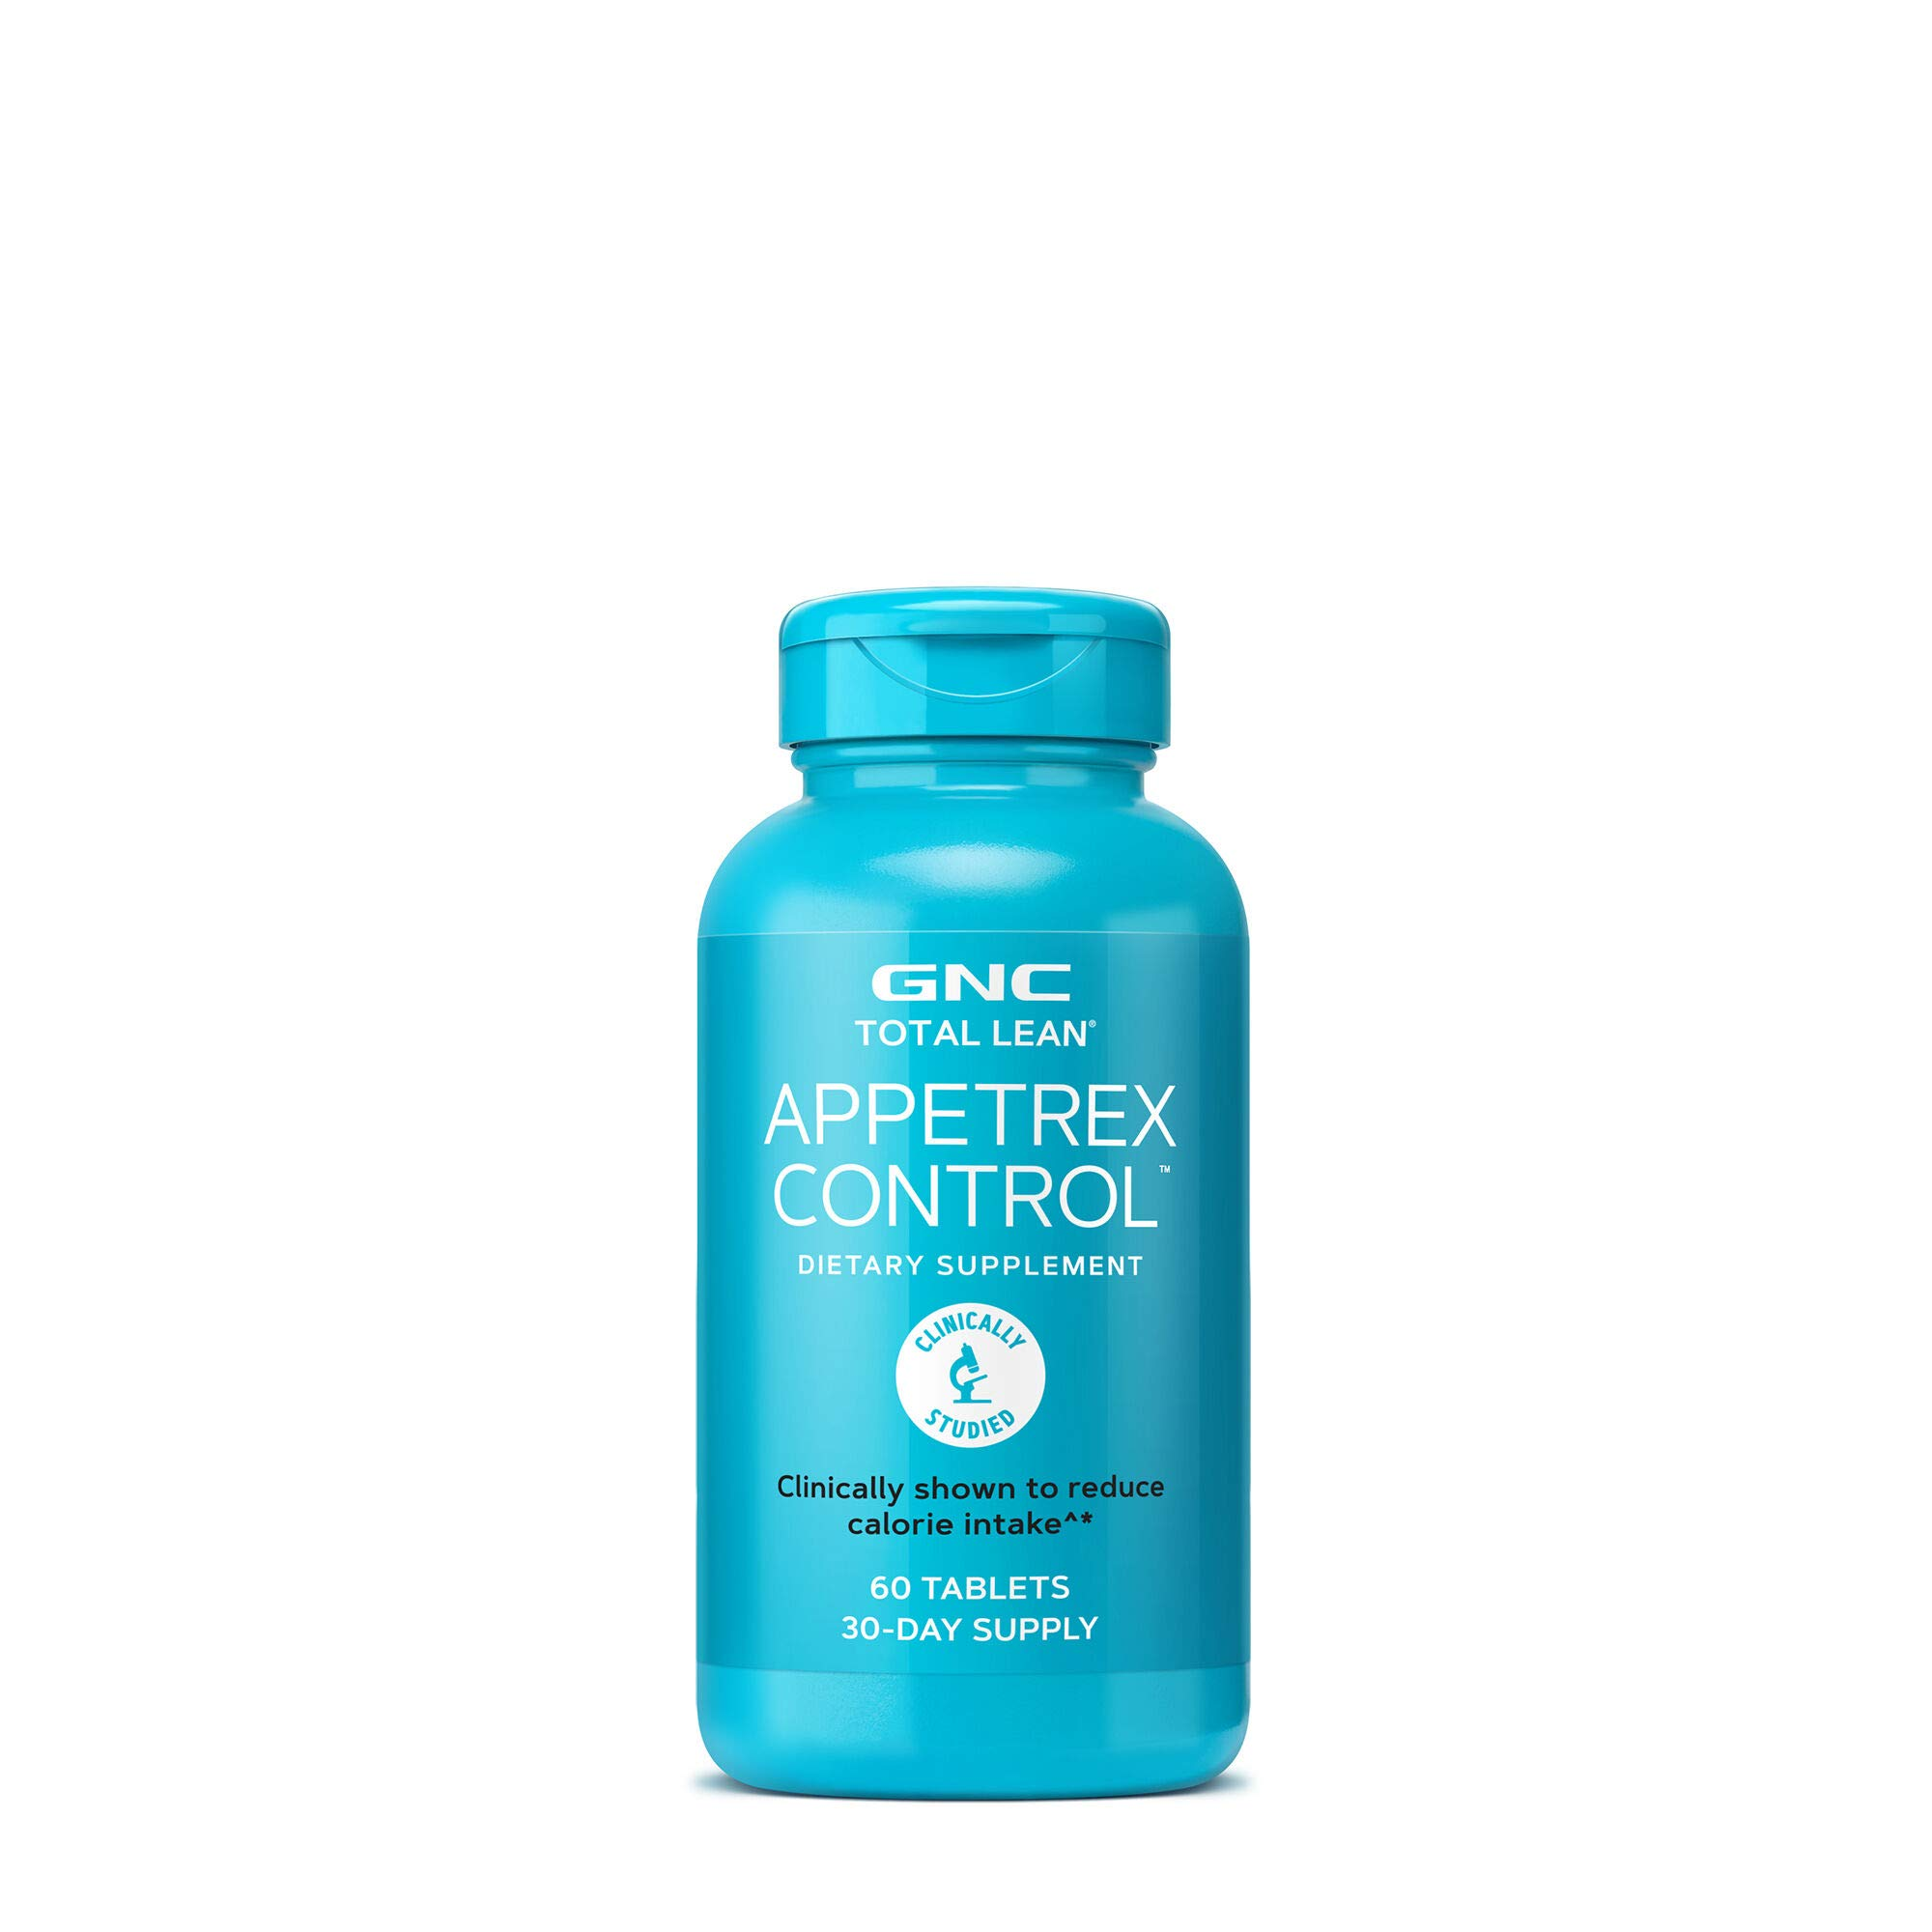 GNC Total Lean Appetrex Control, 60 Tablets, Reduces Calorie Intake